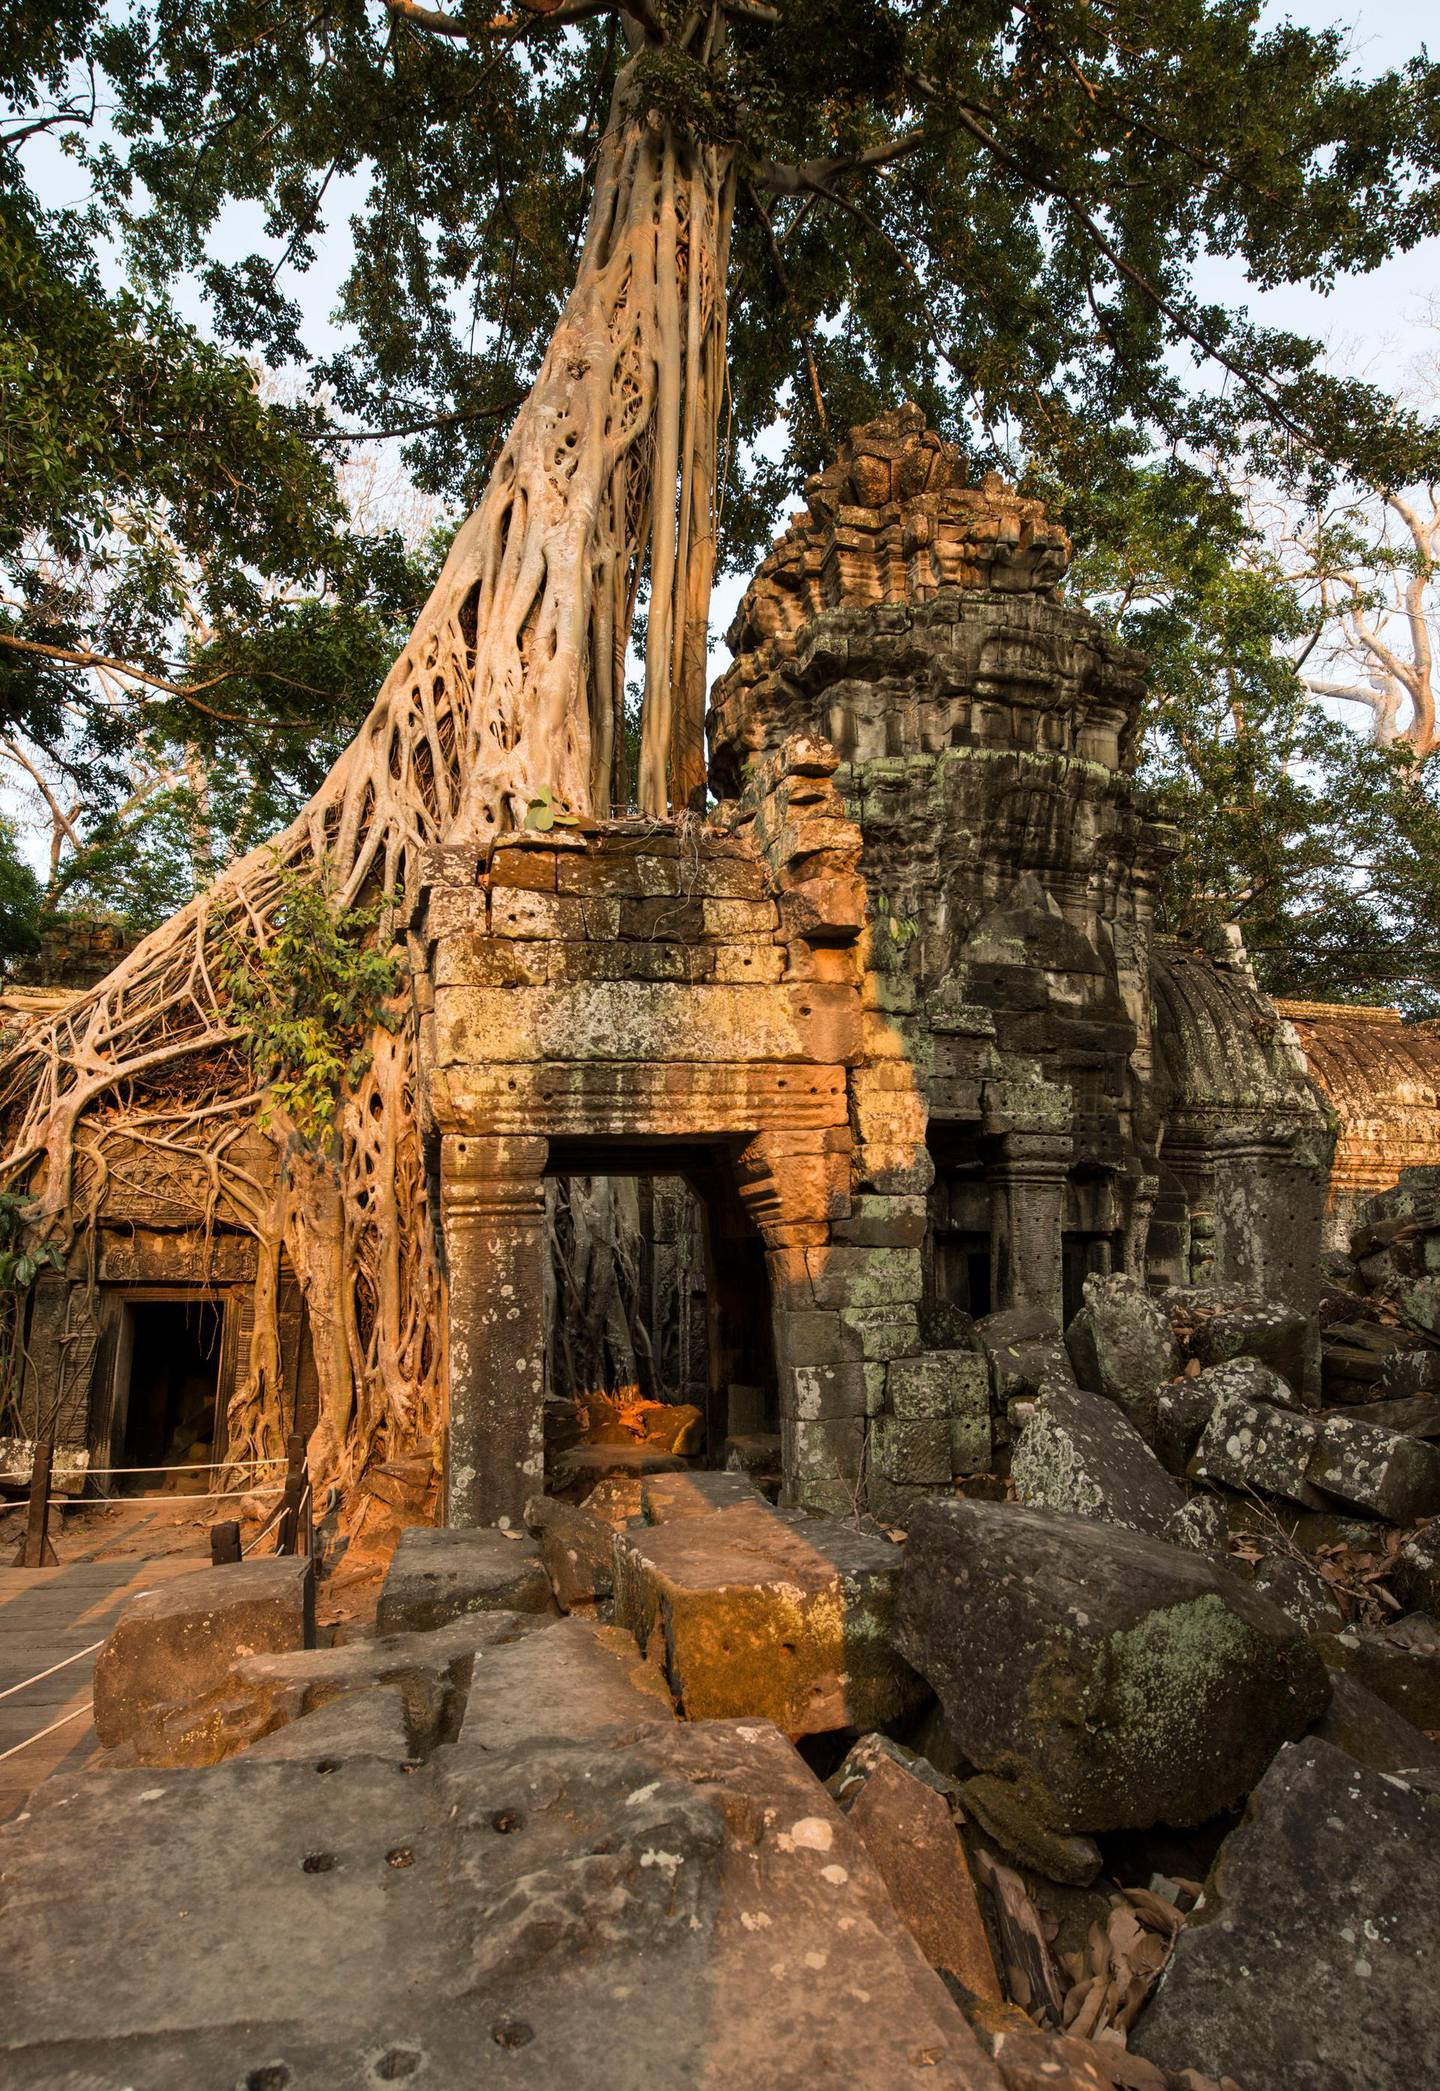 Ta Prohm in Siem Reap, Cambodia,  A battle between nature and architecture in the Cambodian jungle. The Ta Prohm is one of Angkor's best visited monuments. It is known for the huge trees and massive roots growing out of its walls. Getty Images